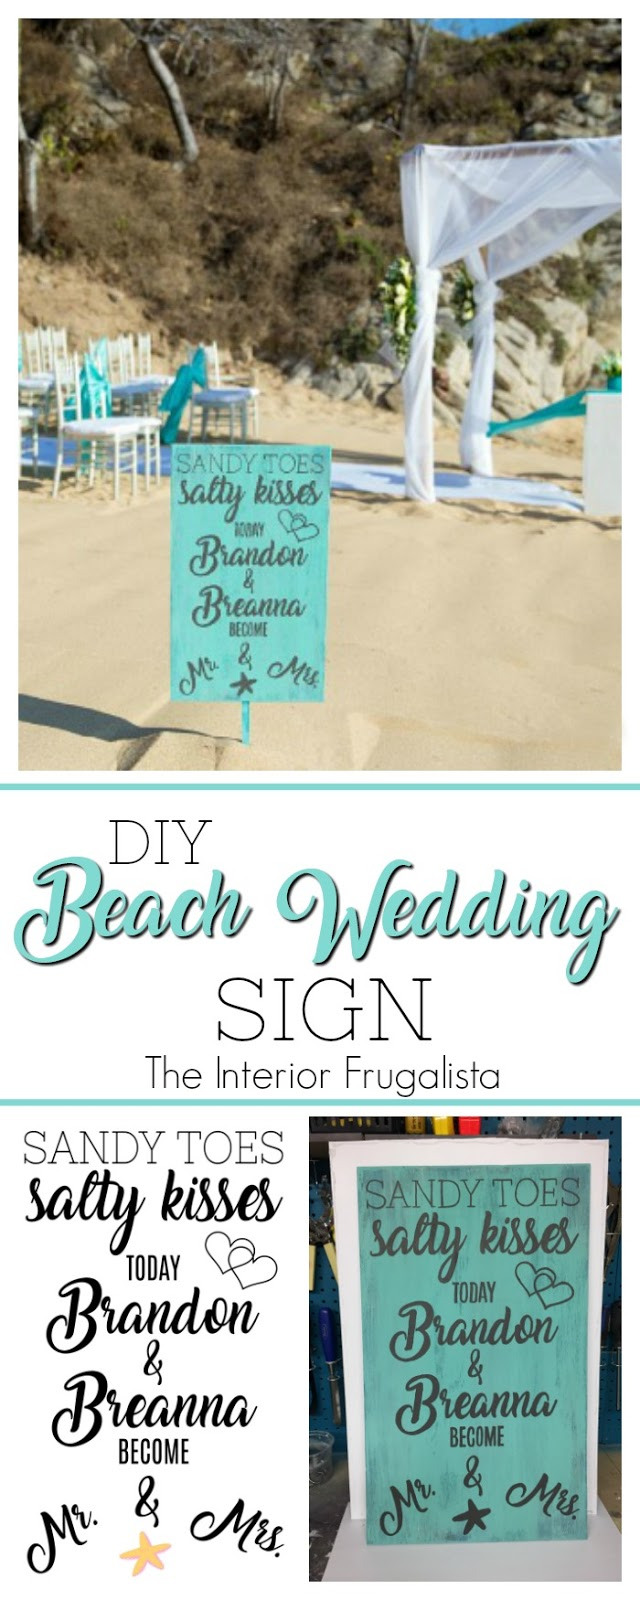 DIY Beach Wedding Sign Tutorial